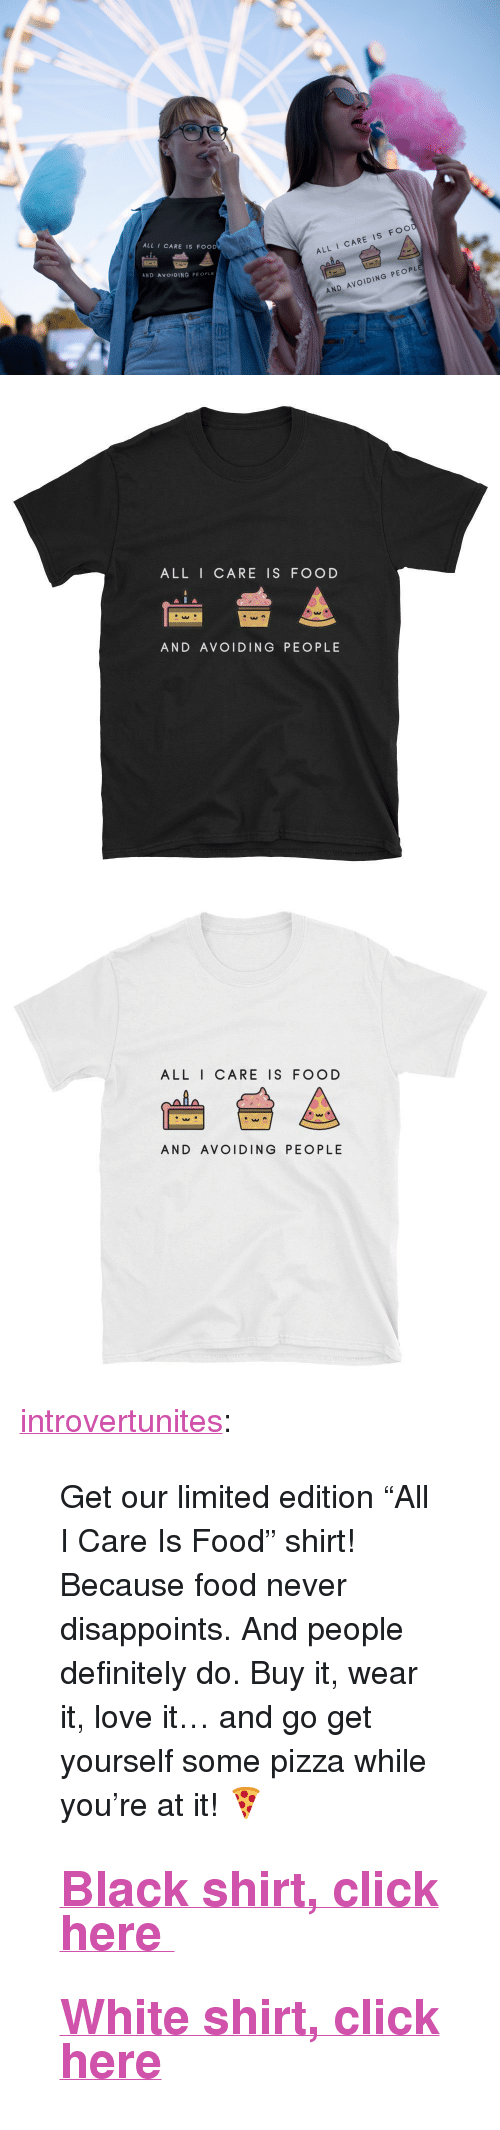 """Click, Definitely, and Food: ALL I CARE IS FOOD  AND AVOIDING PEOPLE  ALL I CARE IS FOO  AND AVOIDING PEOP   ALL I CARE IS FOOD  AND AVOIDING PEOPLE   ALL I CARE IS FOOD  AW  AND AVOIDING PEOPLE <p><a href=""""http://introvertunites.tumblr.com/post/171113683960/get-our-limited-edition-all-i-care-is-food"""" class=""""tumblr_blog"""">introvertunites</a>:</p> <blockquote> <p>Get our limited edition """"All I Care Is Food"""" shirt! Because food never disappoints. And people definitely do. Buy it, wear it, love it… and go get yourself some pizza while you're at it!🍕<br/></p> <h2><b><a href=""""https://www.introvertpalace.com/products/short-sleeve-unisex-t-shirt-112"""">Black shirt, click here</a></b></h2> <h2><b><a href=""""https://www.introvertpalace.com/products/short-sleeve-unisex-t-shirt-111"""">White shirt, click here</a></b></h2> </blockquote>"""